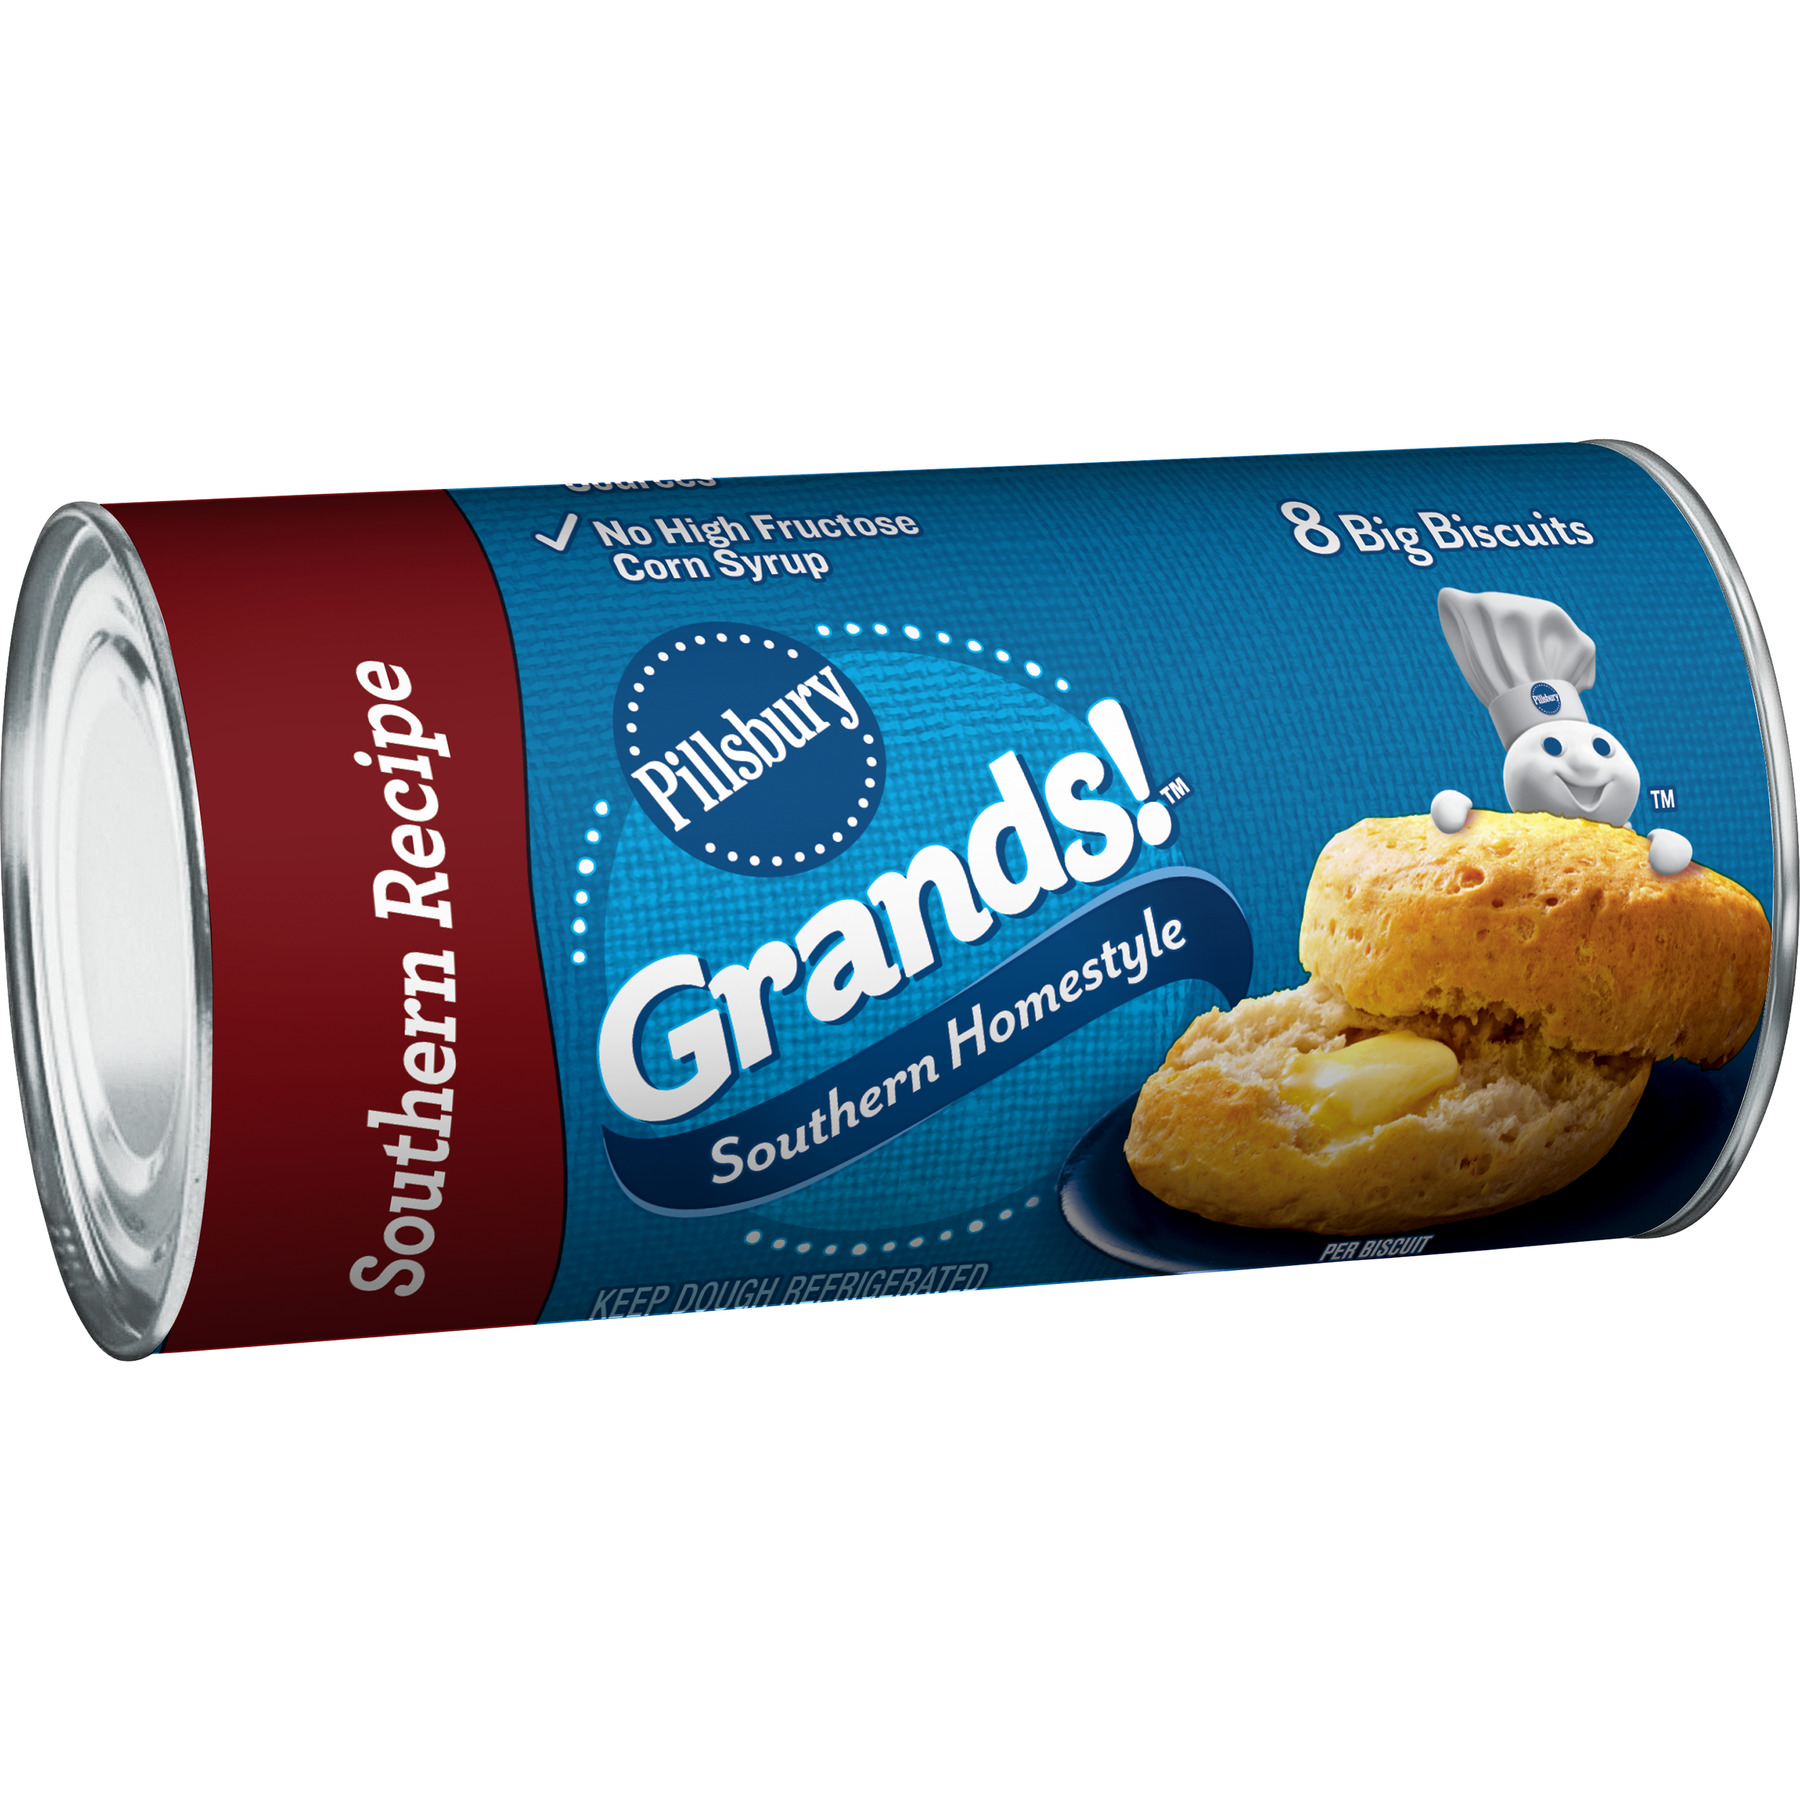 Pillsbury Grands! Southern Homestyle Biscuits,16.3 Oz., 8 Count ...